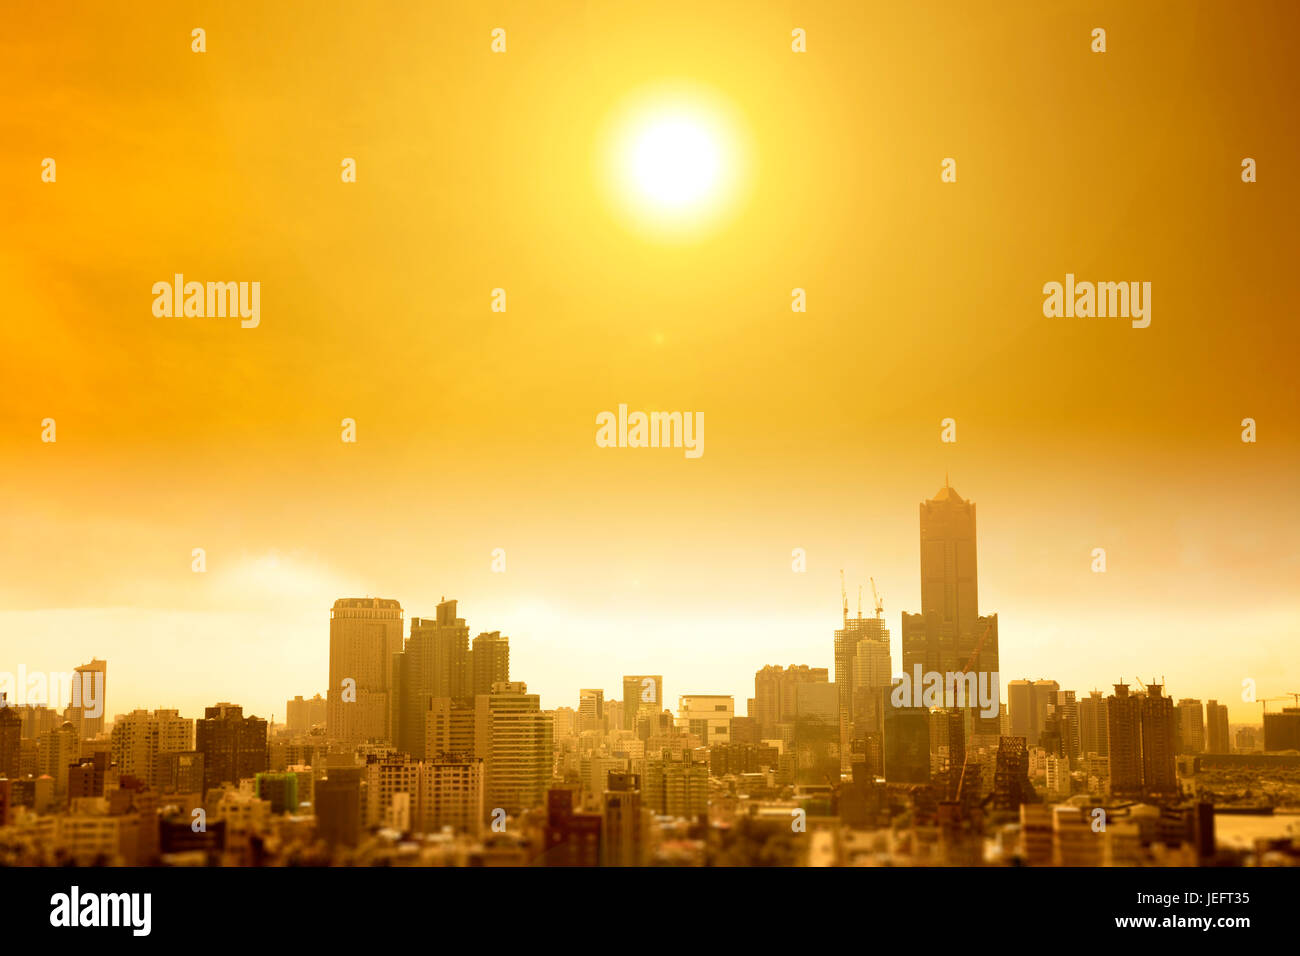 summer heat wave in the city - Stock Image